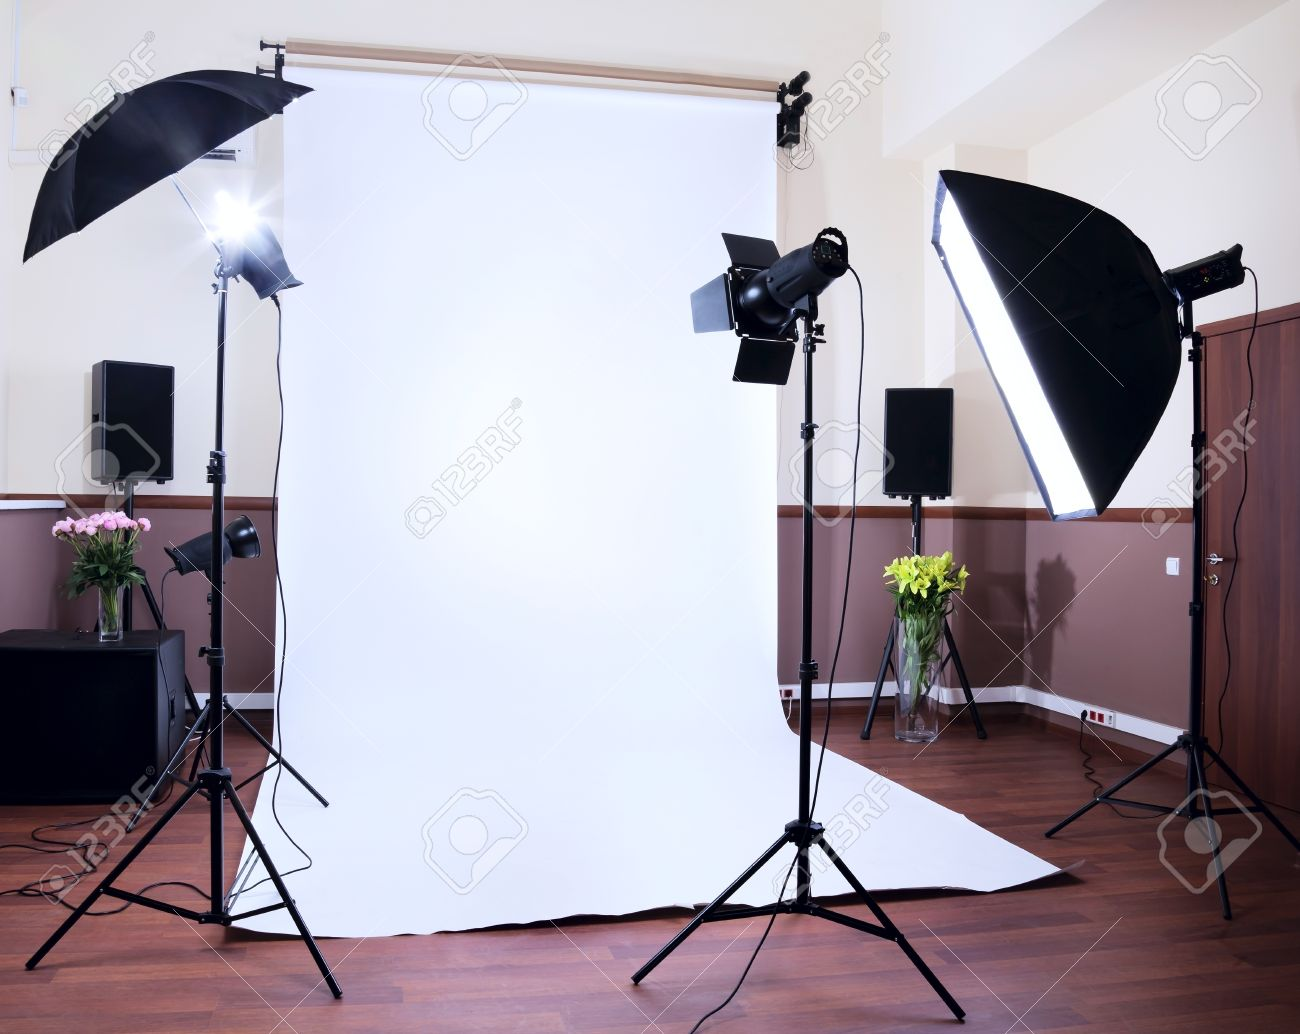 Photo Studio In A Private School With Lighting Equipment Stock ... for Photography Lighting & 31+ Amazing Photography Lighting Equipment For